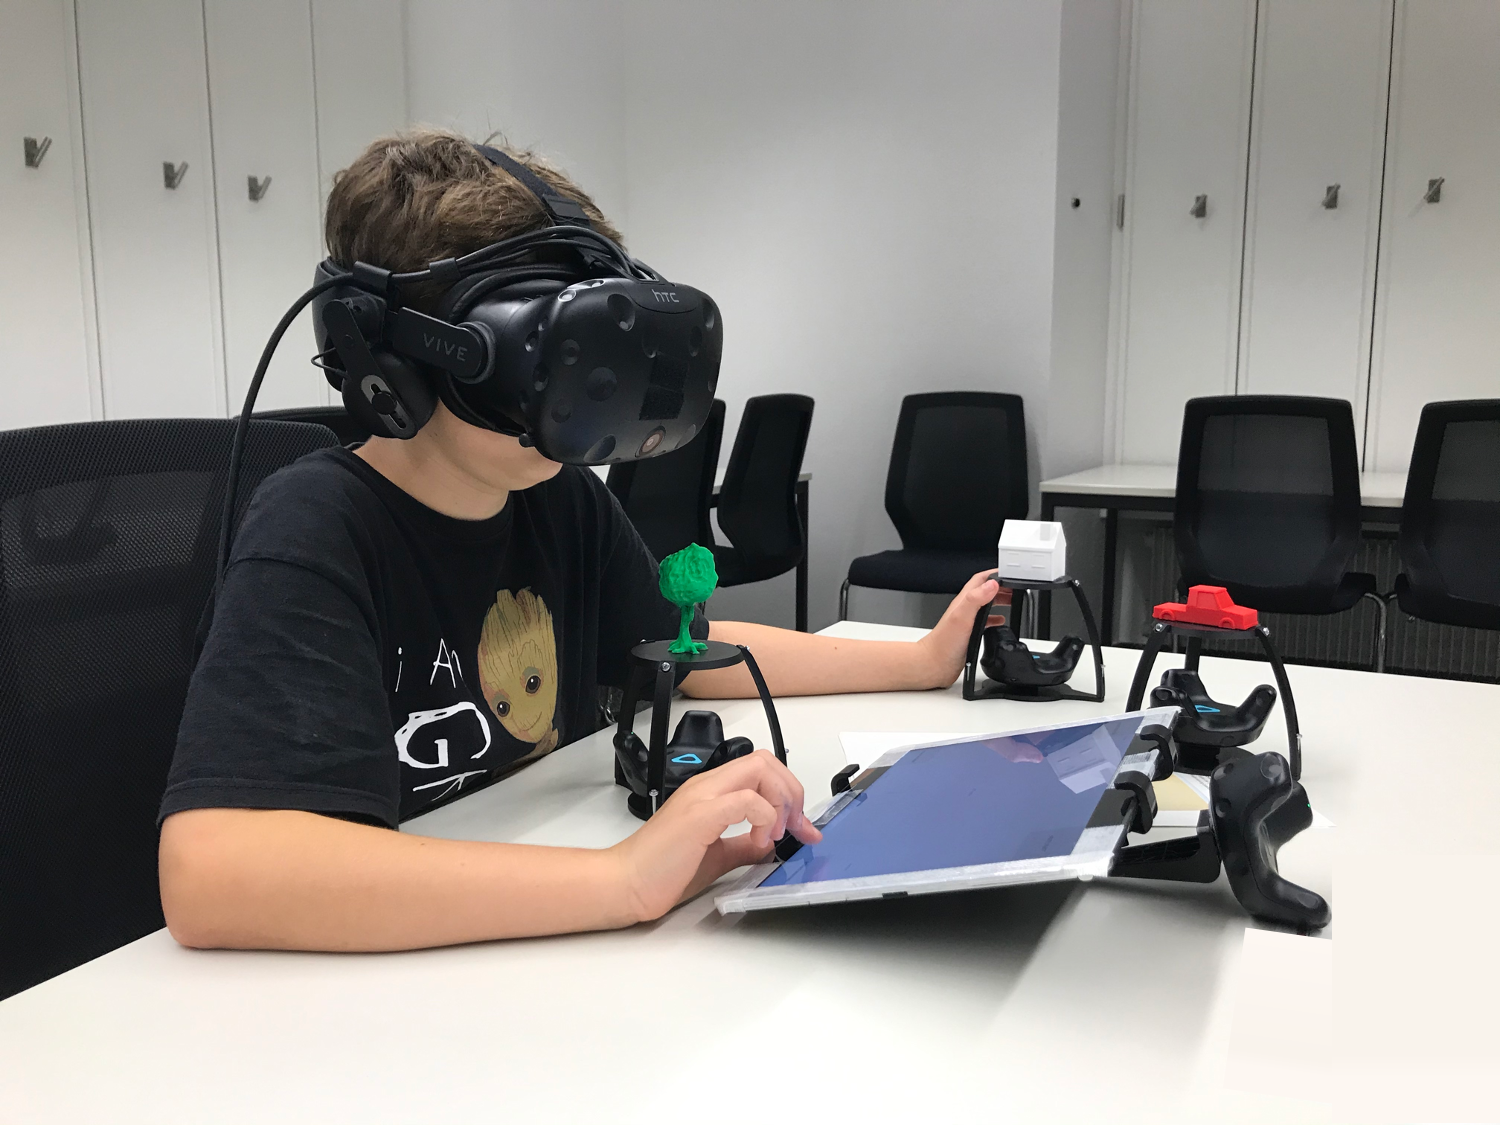 VRtangibles: Assisting Children in Creating Virtual Scenes using Tangible Objects and Touch Input